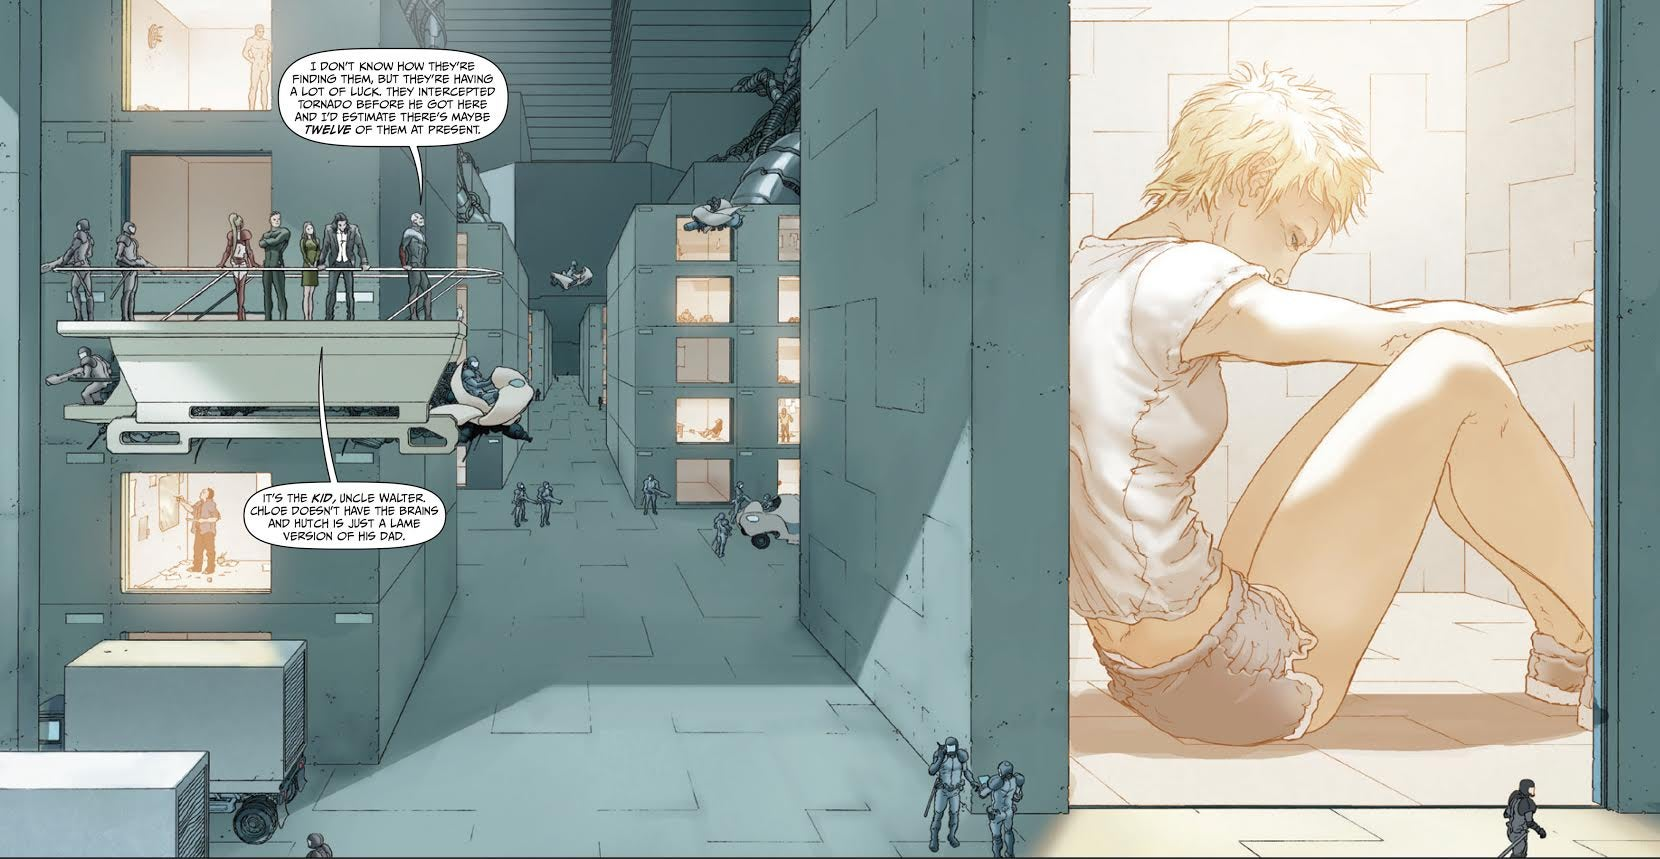 Jupiters Legacy 1 - Prison - Frank Quitely